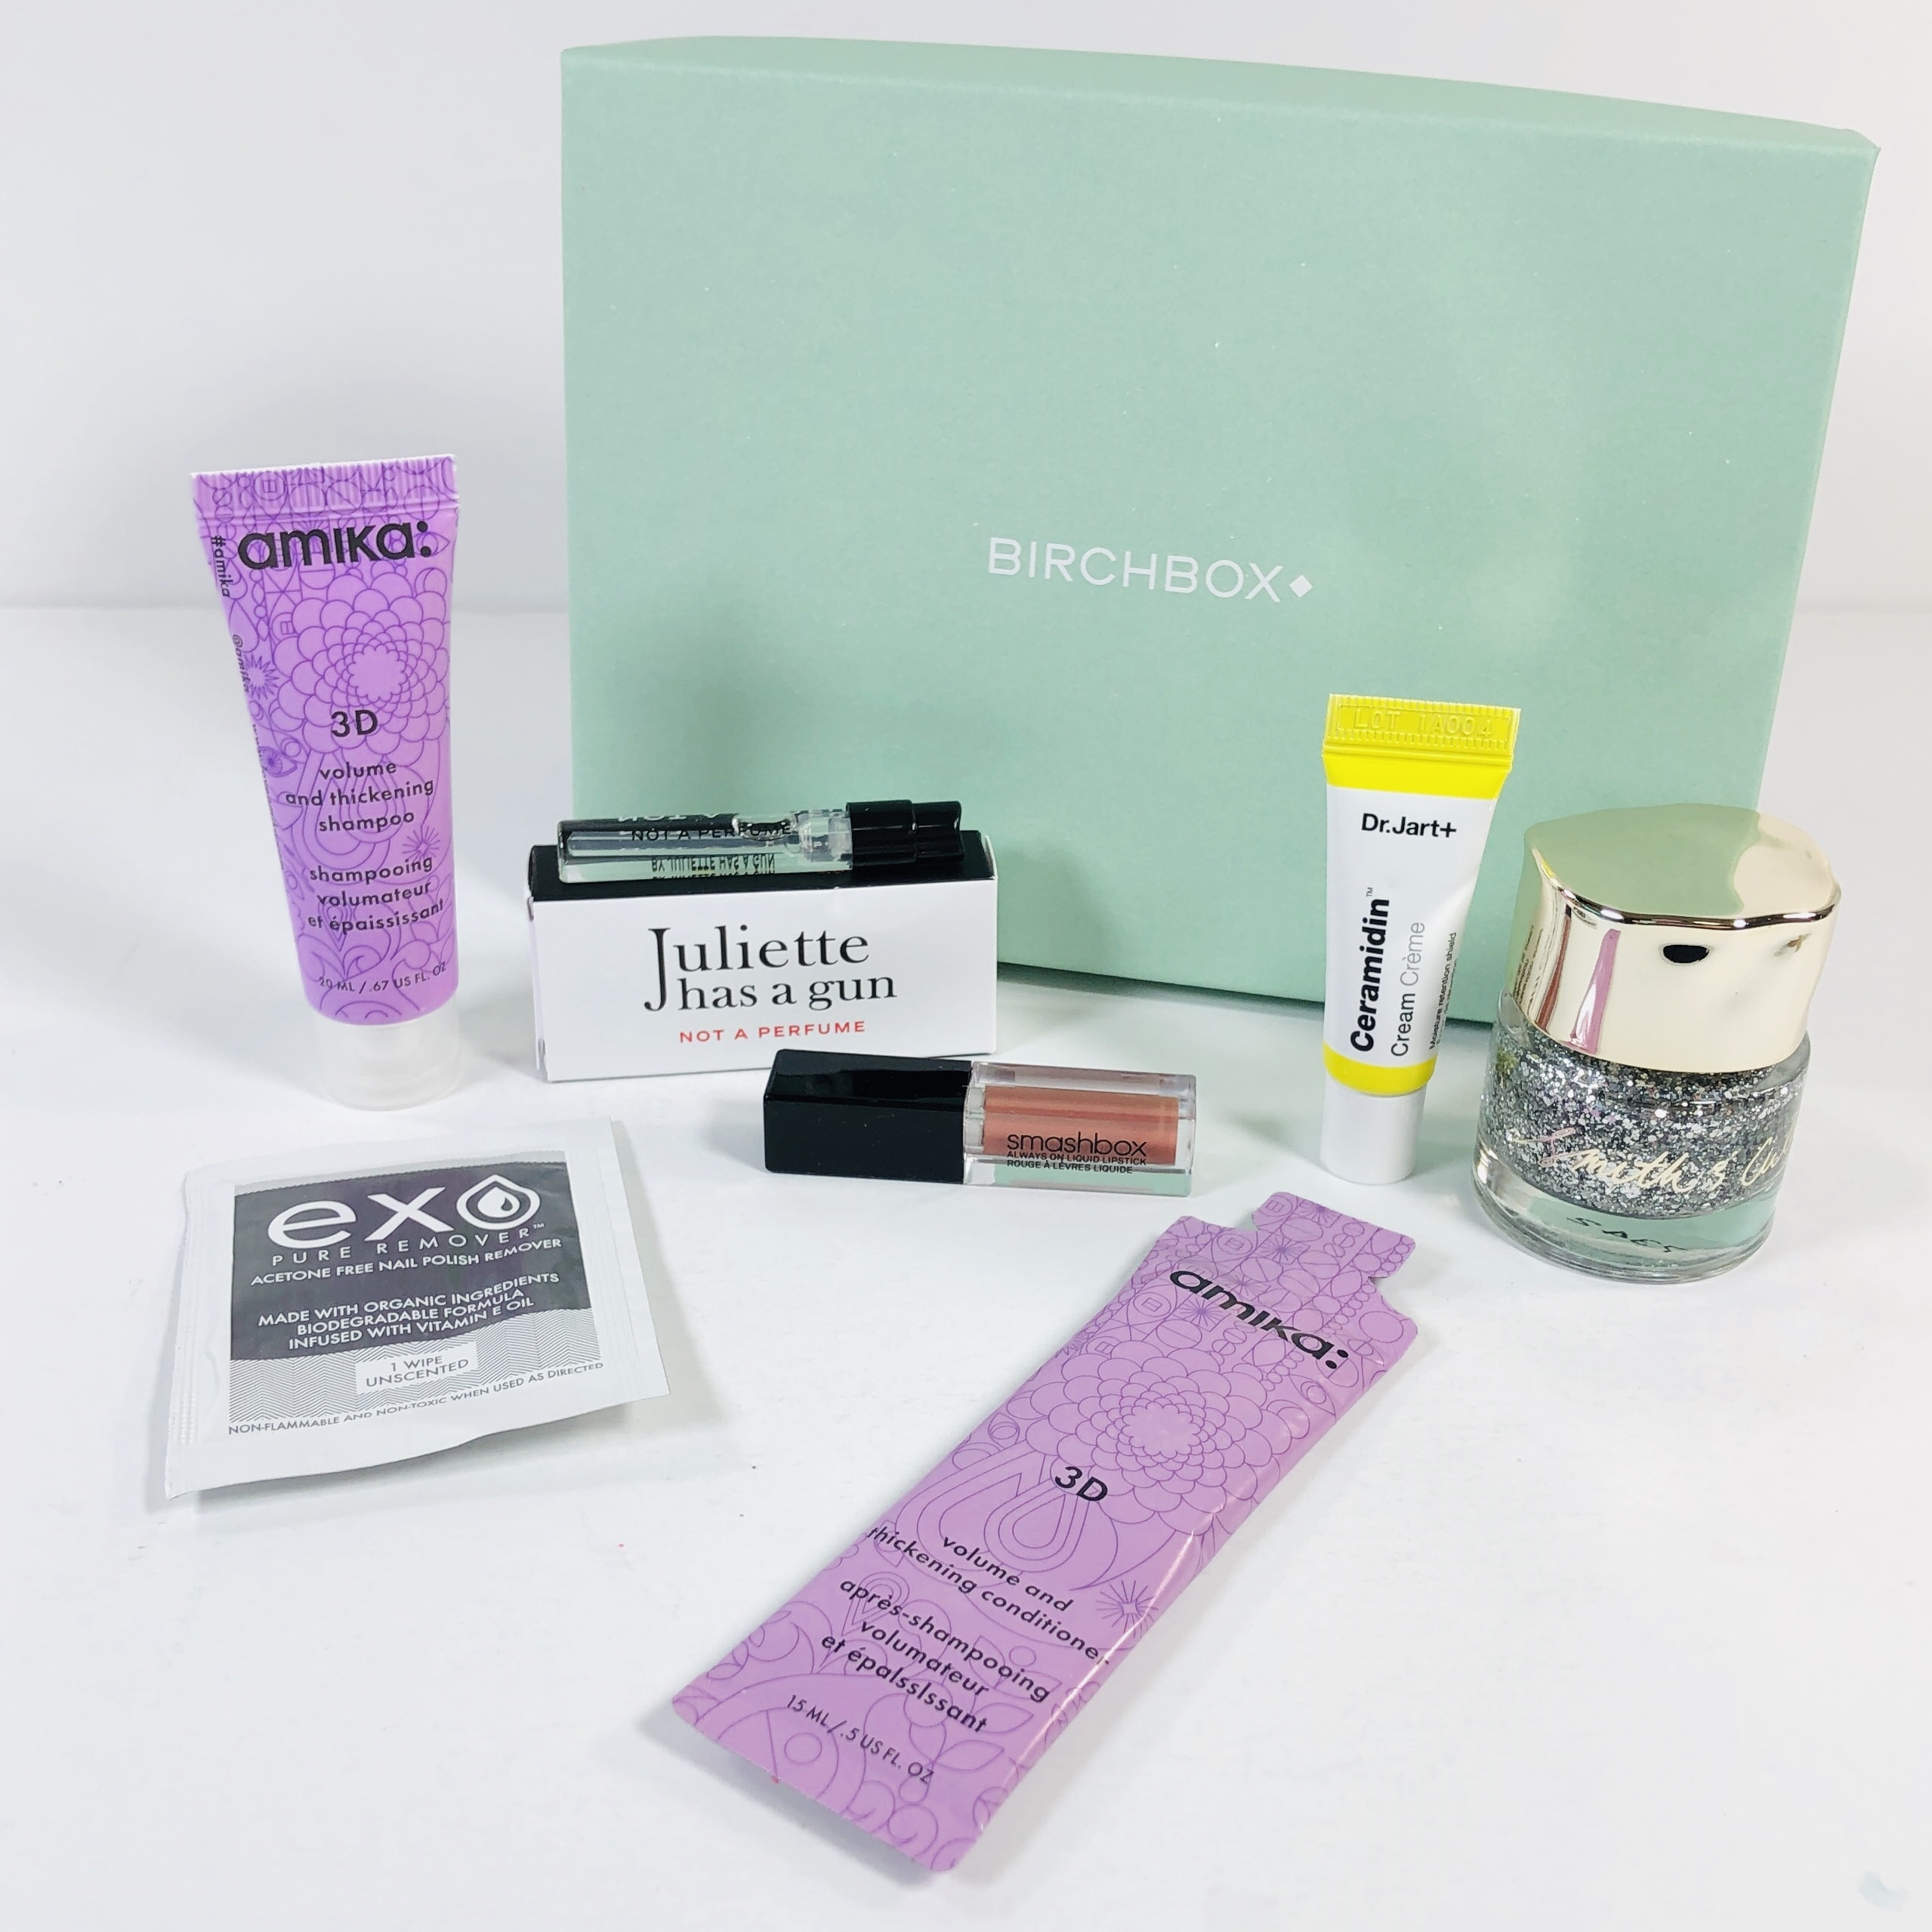 Birchbox September 2019 Subscription Box Review + Coupon – Curated Box #2!